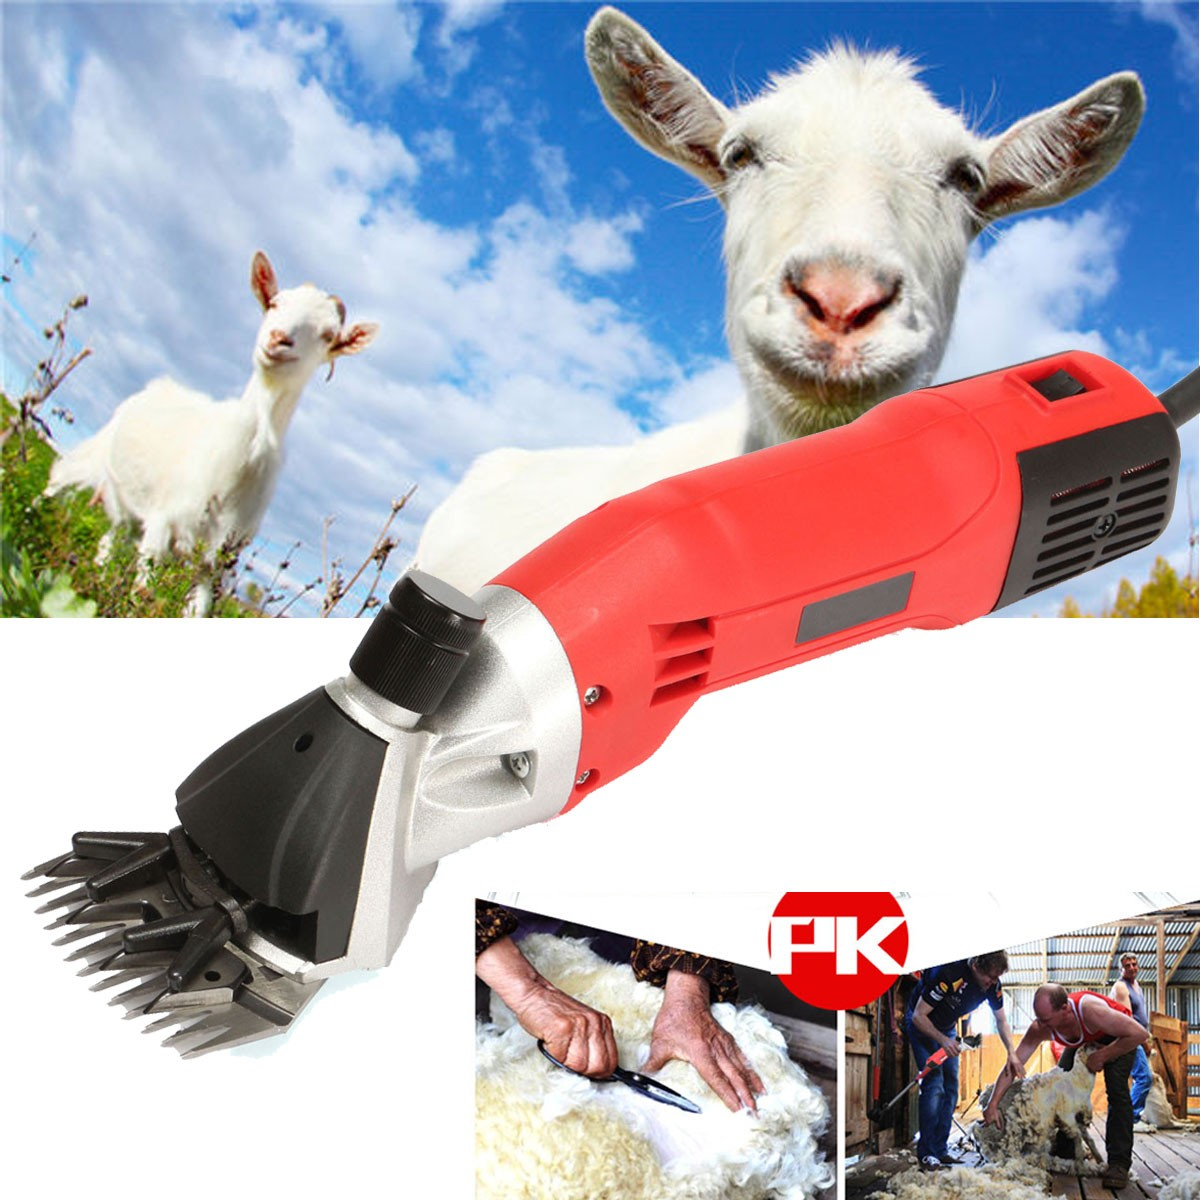 500W 220V AC Electric Sheep Goats Shearing Clipper Shear Alpaca Farm Shears Tool Aluminum Power Scissors new 680w sheep wool clipper electric sheep goats shearing clipper shears 1 set 13 straight tooth blade comb